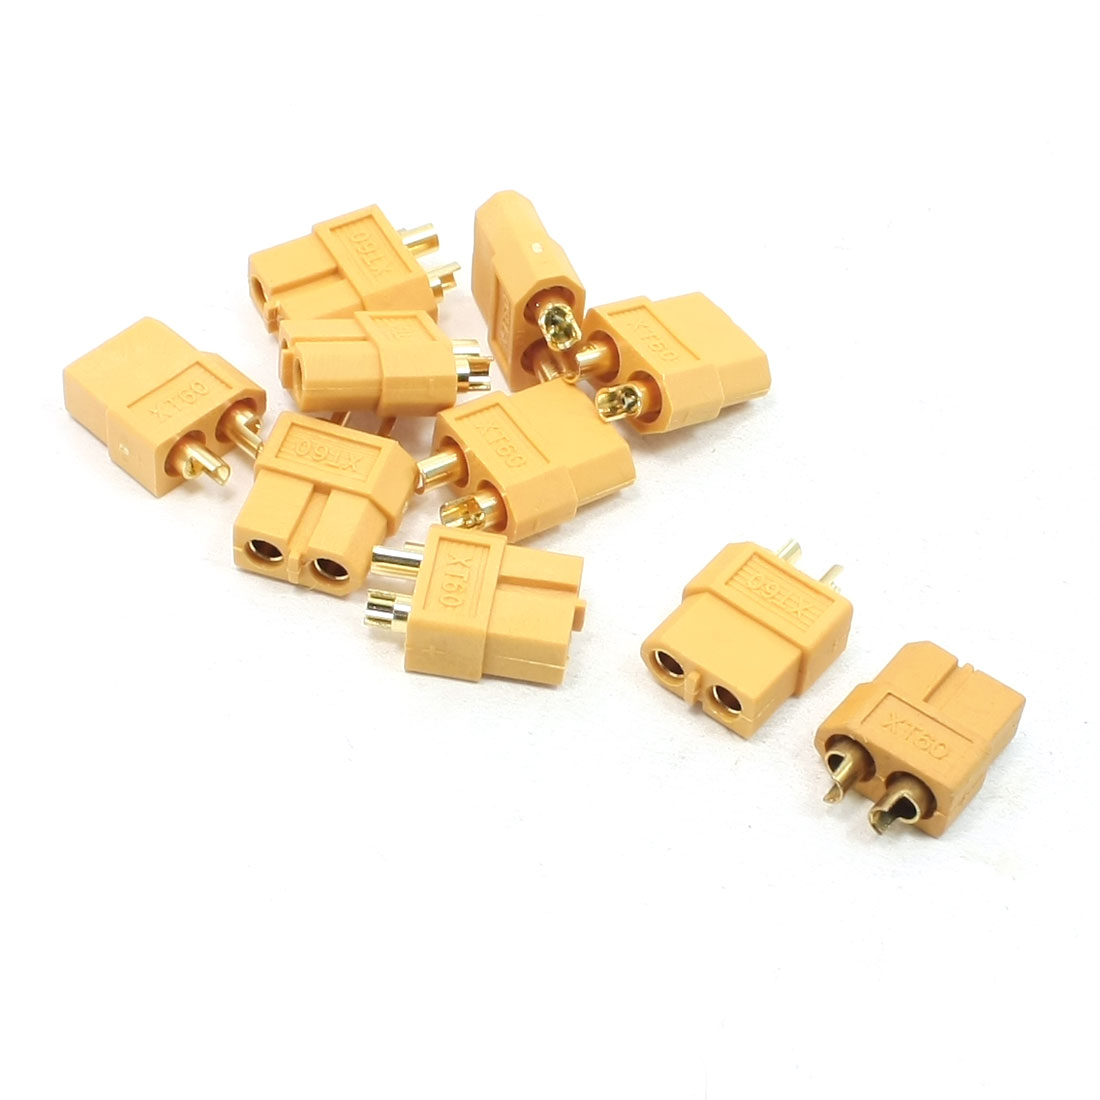 S713 Type Female XT60 Connector 10 Pcs for Model Airplane